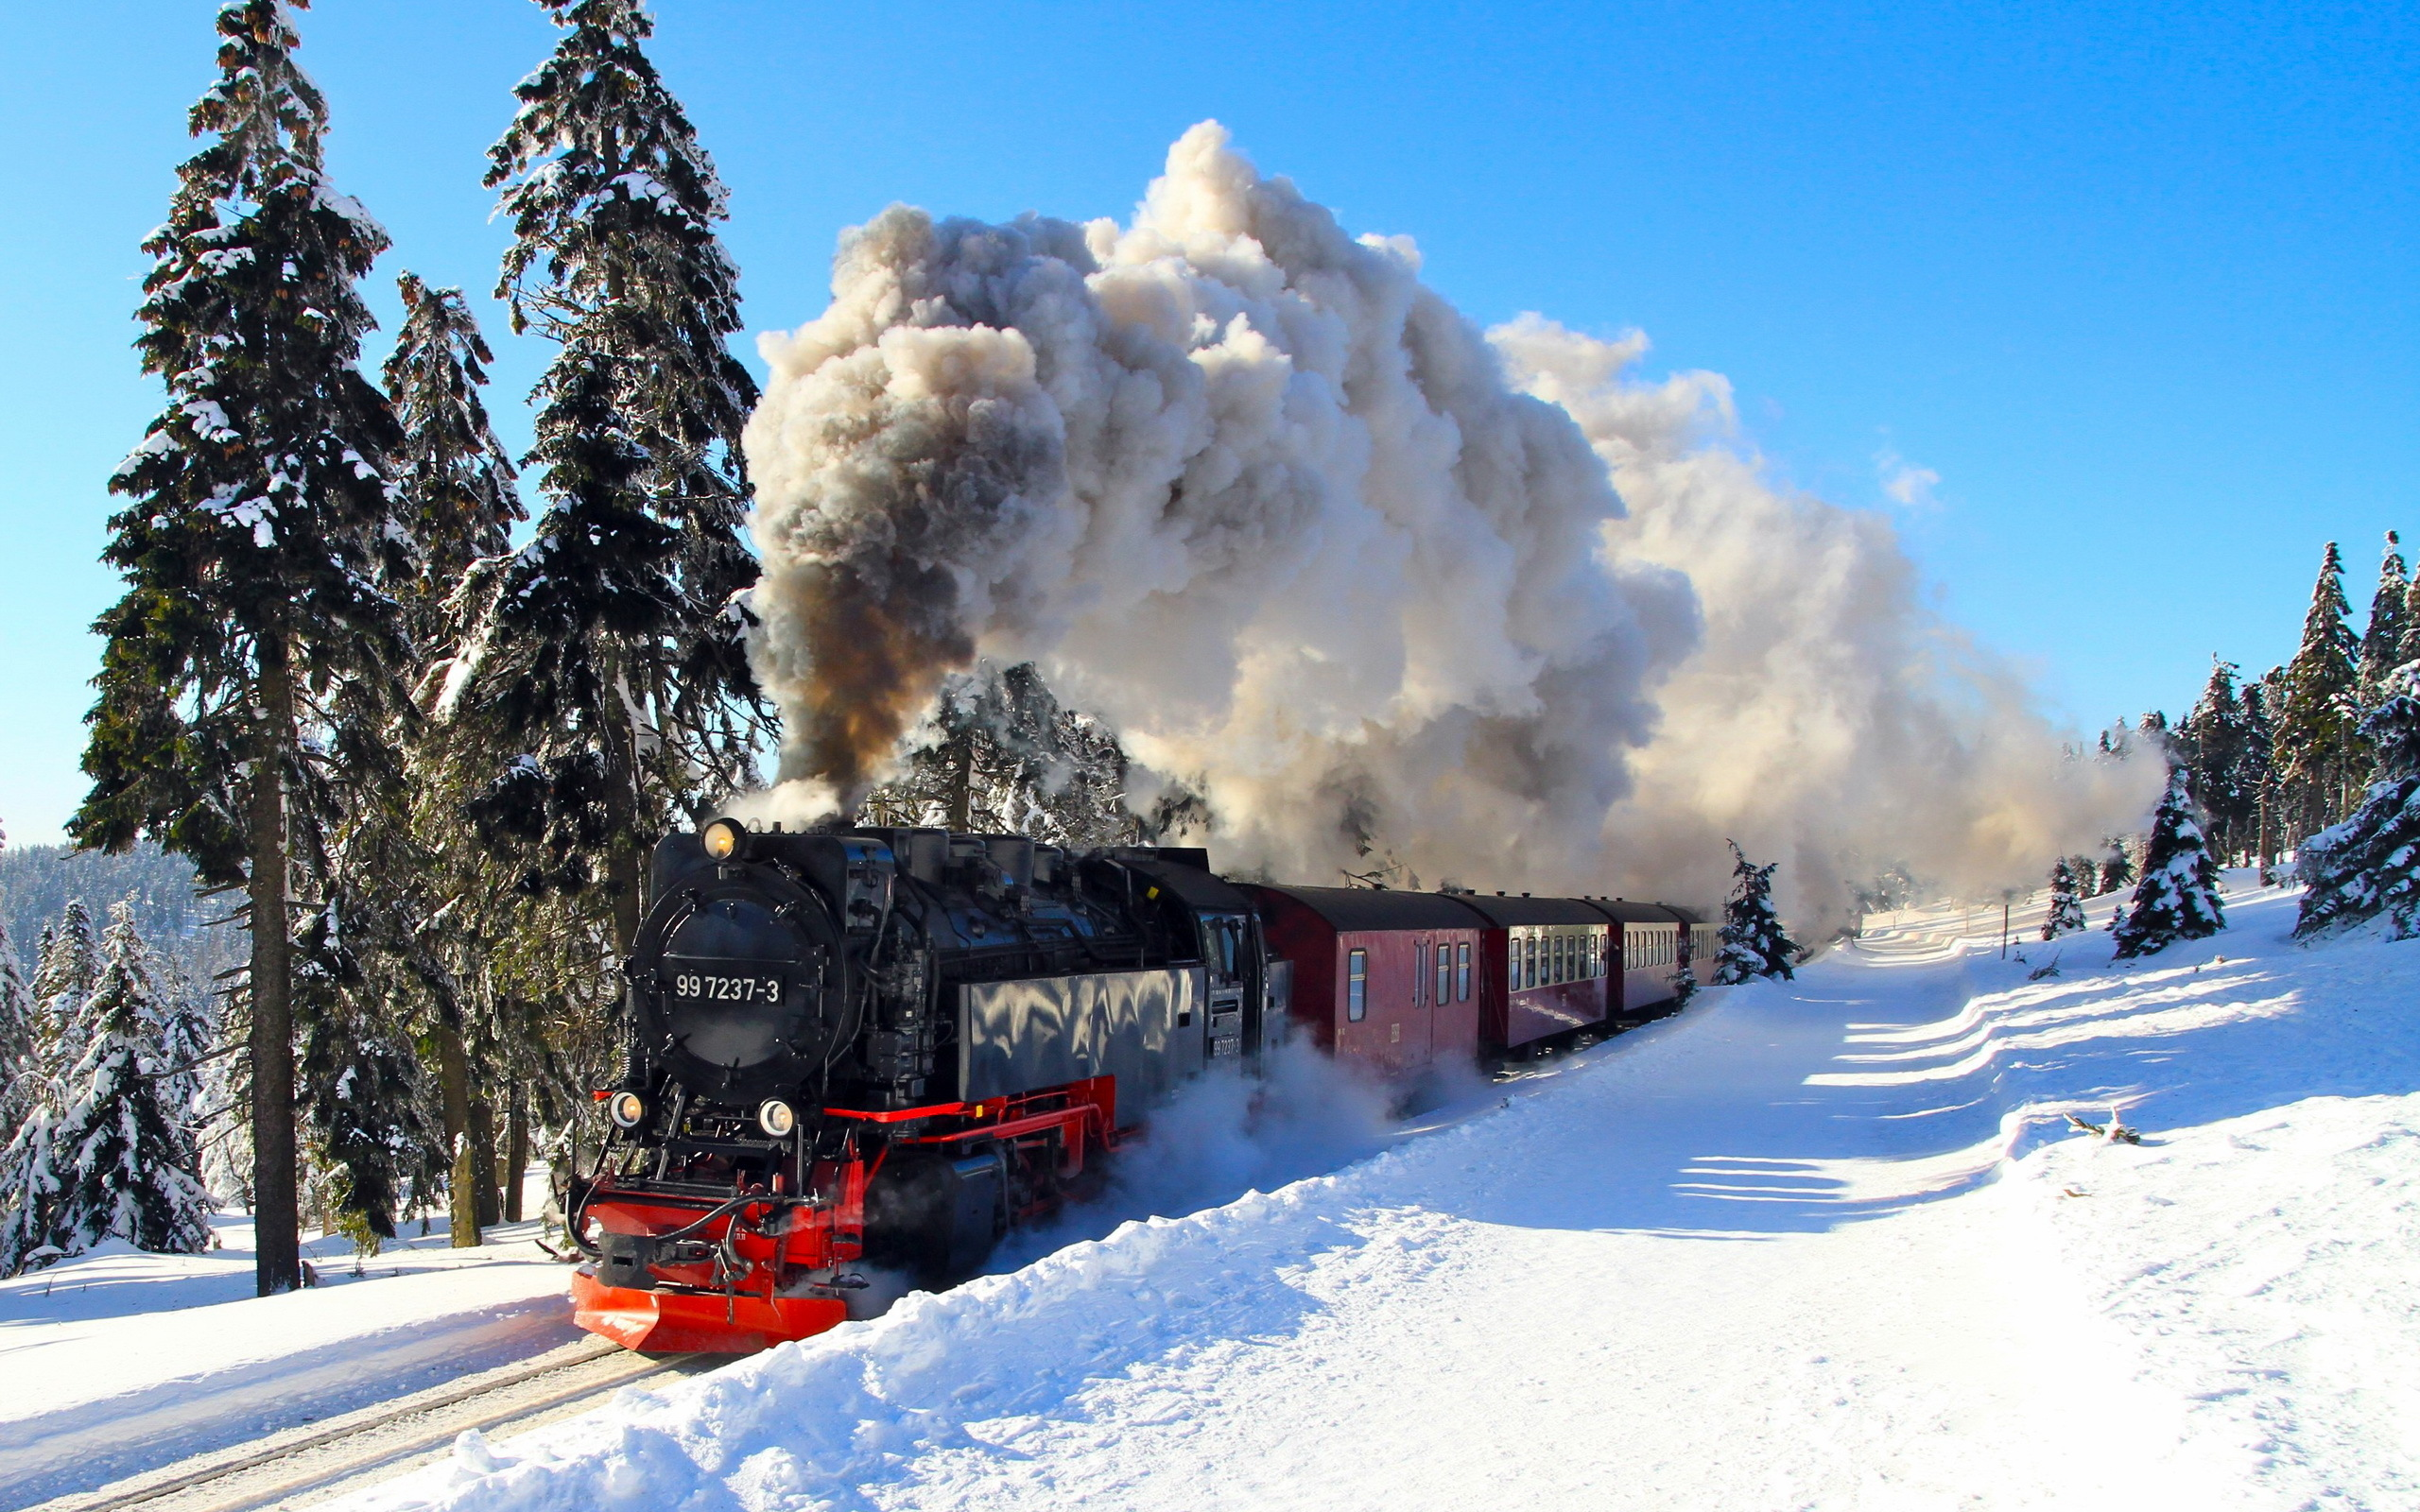 Winter locomotive